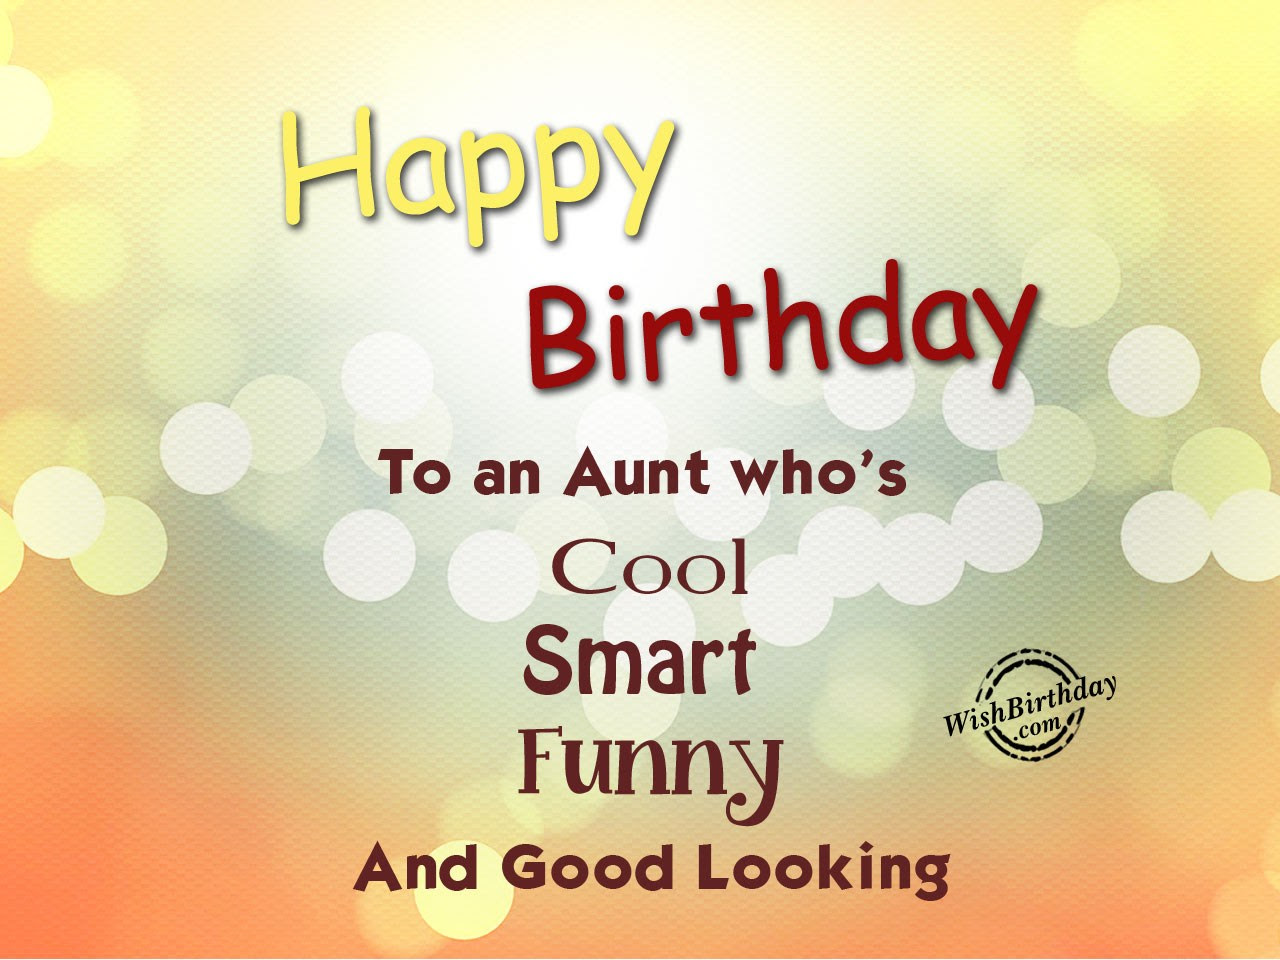 Funny Birthday Card Sayings For Aunt Quotes Quotesgram